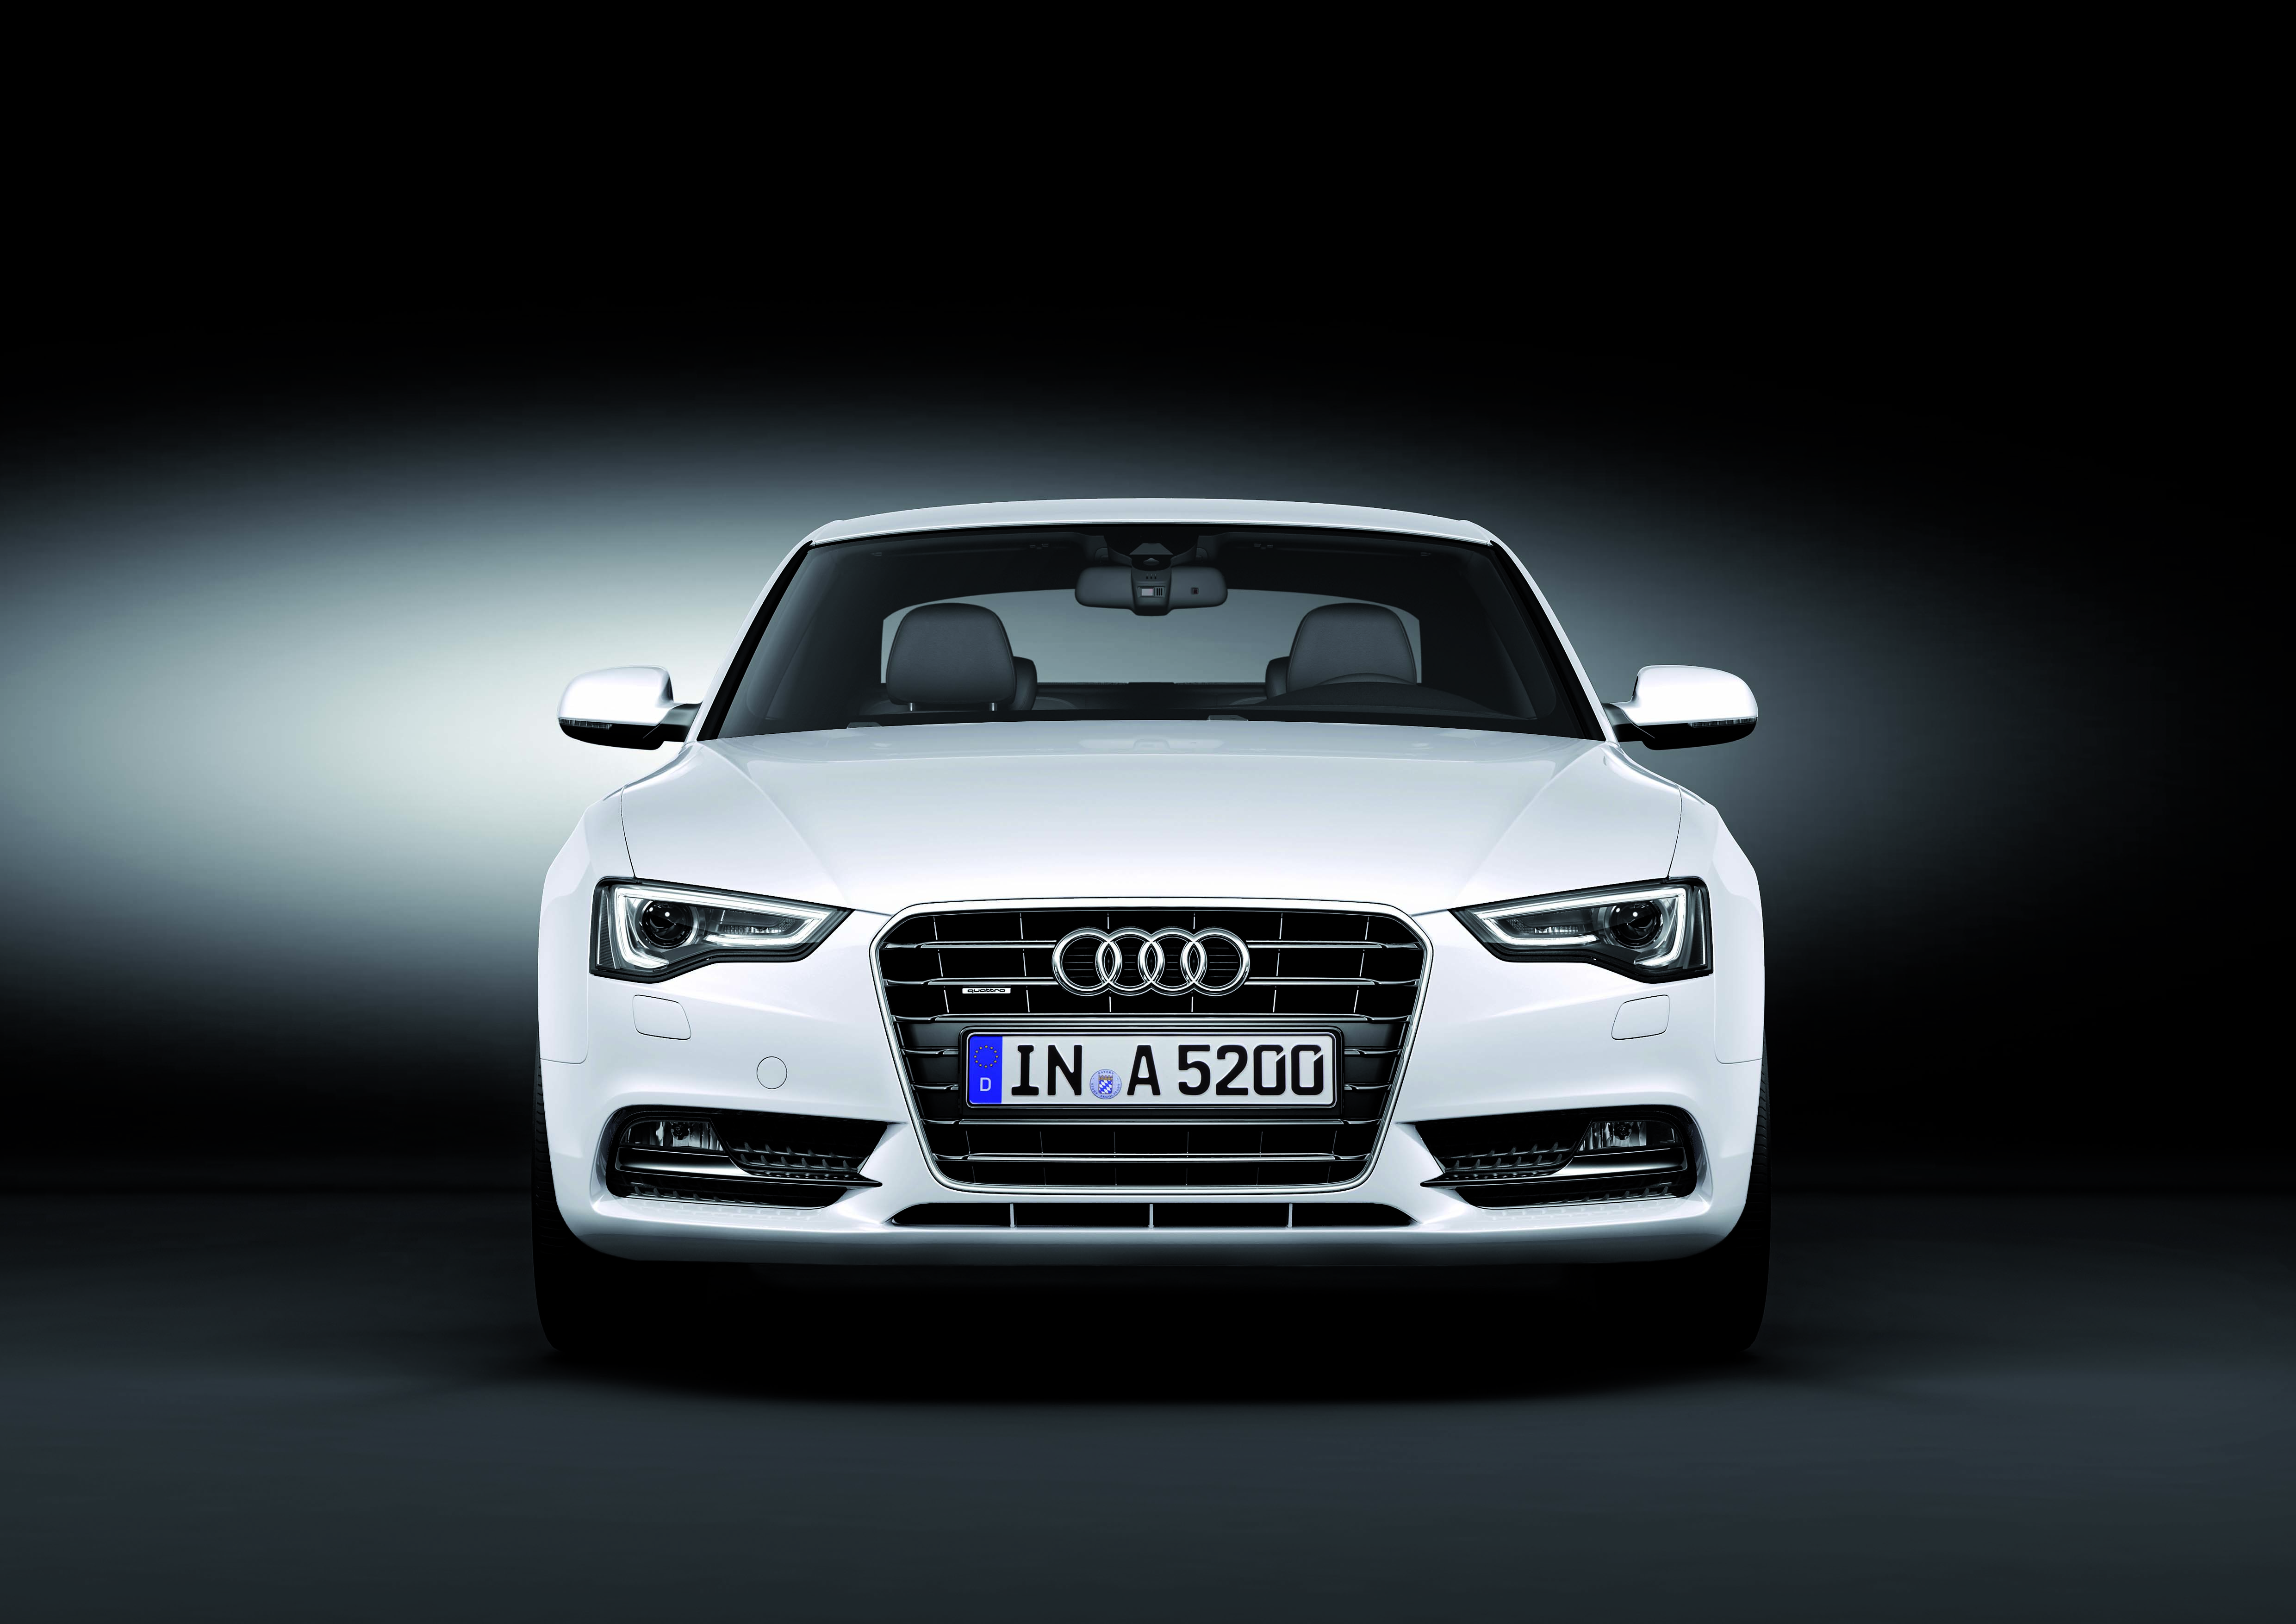 audi a5 (8t3) 2013 pictures #1